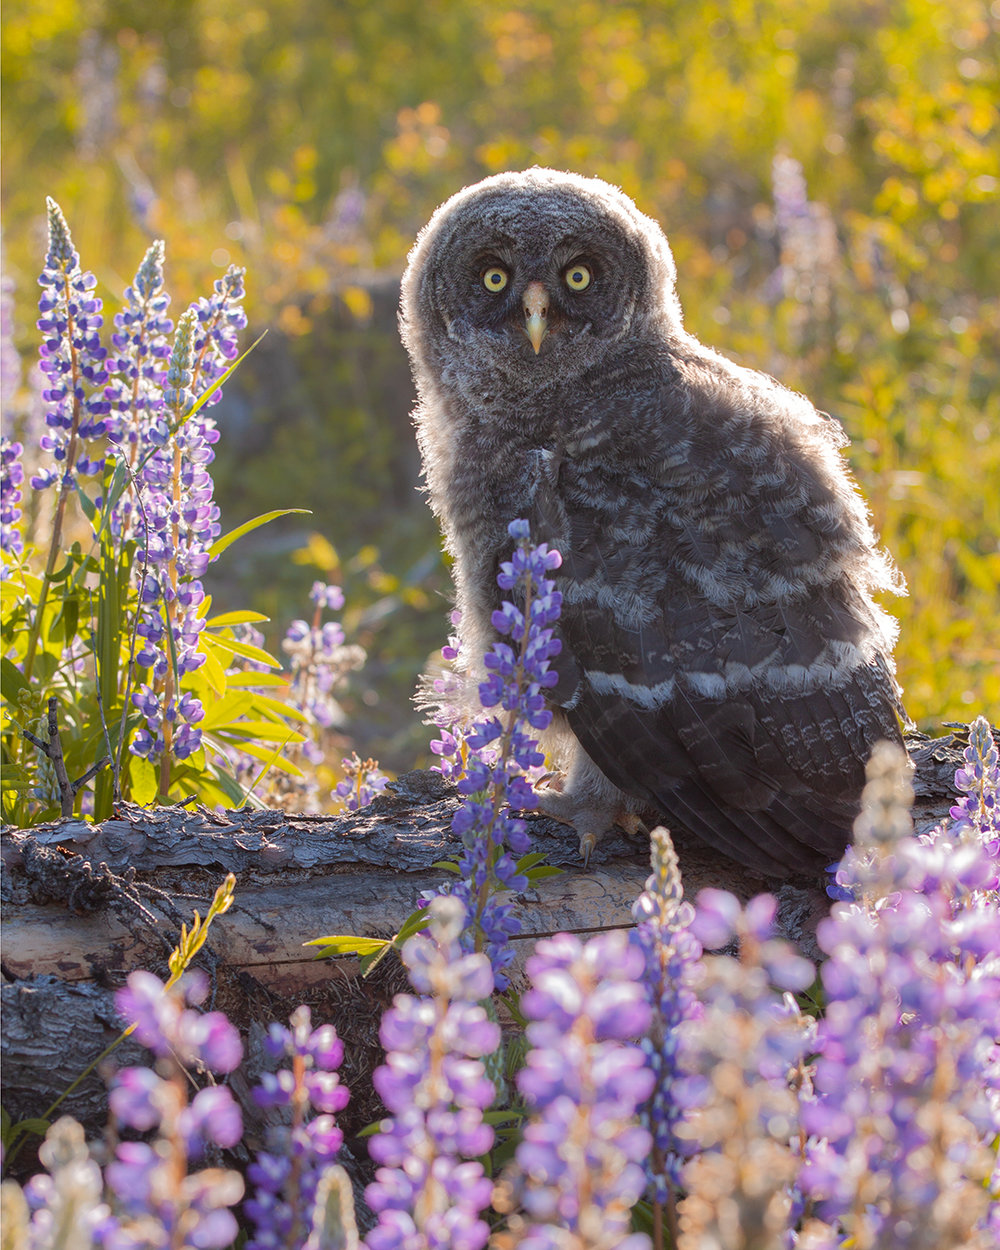 Hearing the begging calls of two Great Grey Owl nestlings from several hundred metres away led me to a beautiful site, resulting in several days of photography opportunities.